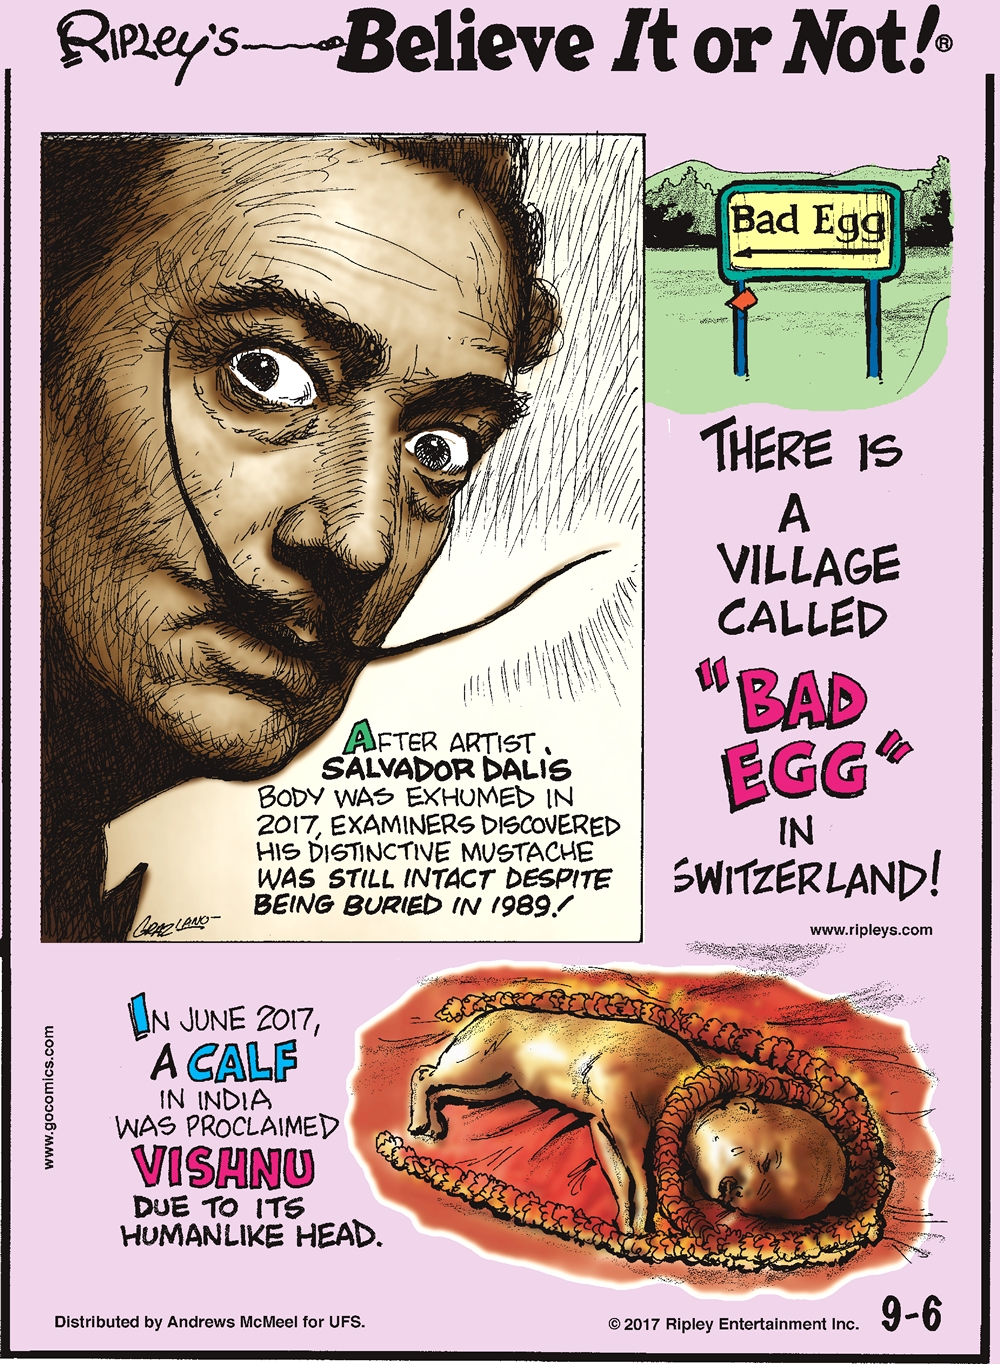 "After artist Salvador Dali's body was exhumed in 2017, examiners discovered his distinctive mustache was still intact despite being buried in 1989!-------------------- There is a village called ""Bad Egg"" in Switzerland!--------------------- In June 2017, a calf in India was proclaimed Vishnu due to its humanlike head."